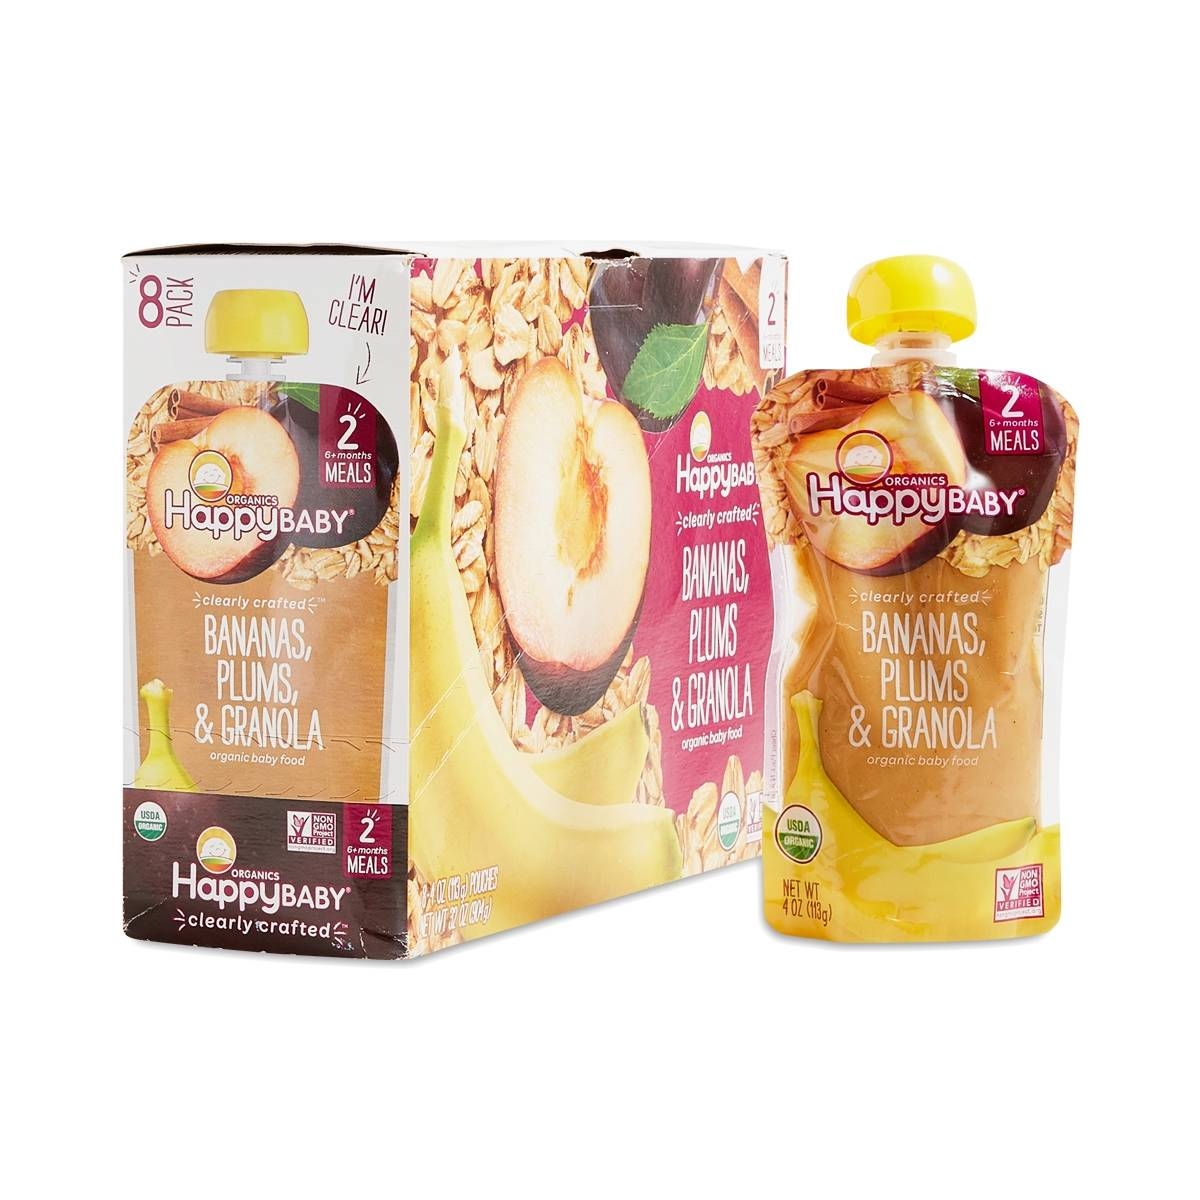 Happy Baby Bananas Plums Amp Granola Organic Baby Food